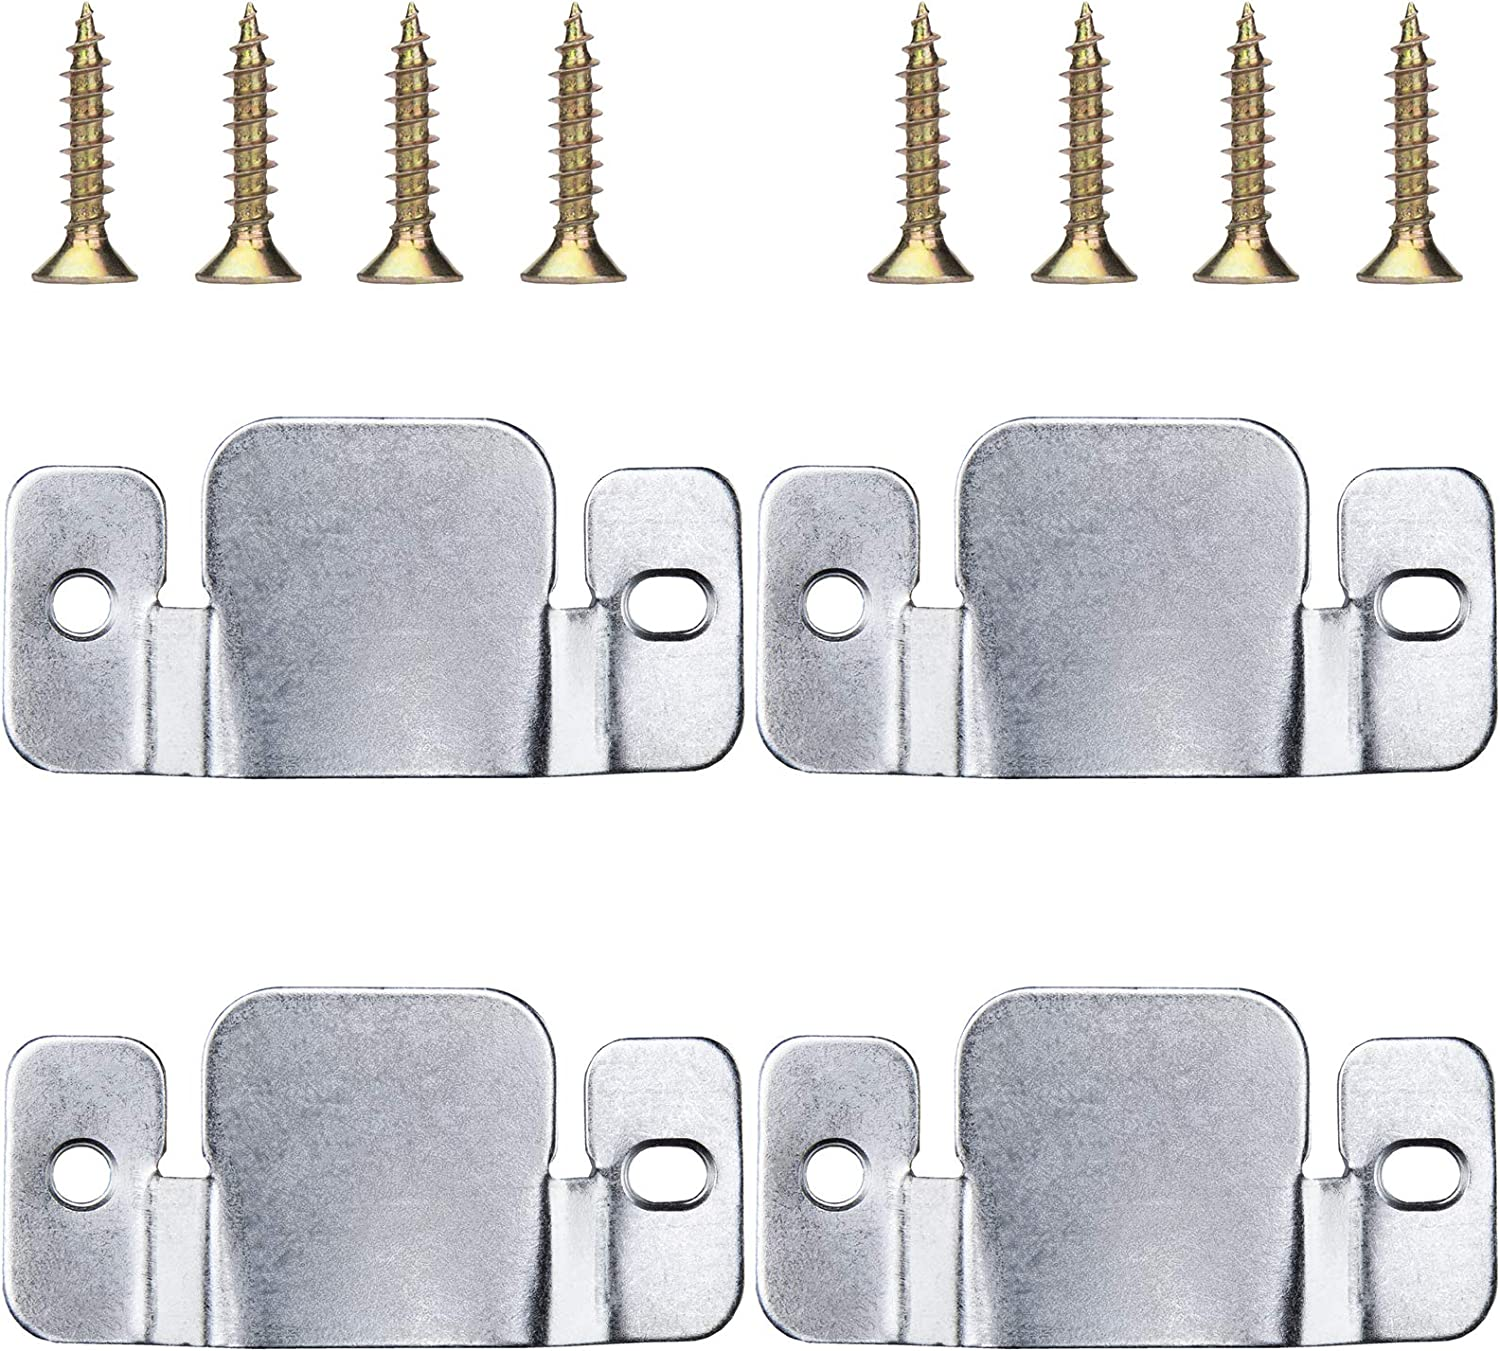 FATLODA 4PCS Sectional Couch Connectors, Upgrade Metal Sofa Sectional Connectors Bracket, Universal Sectional Couch Clips for Loveseat, Chair or Chaise Lounge (with 8PCS Screws)